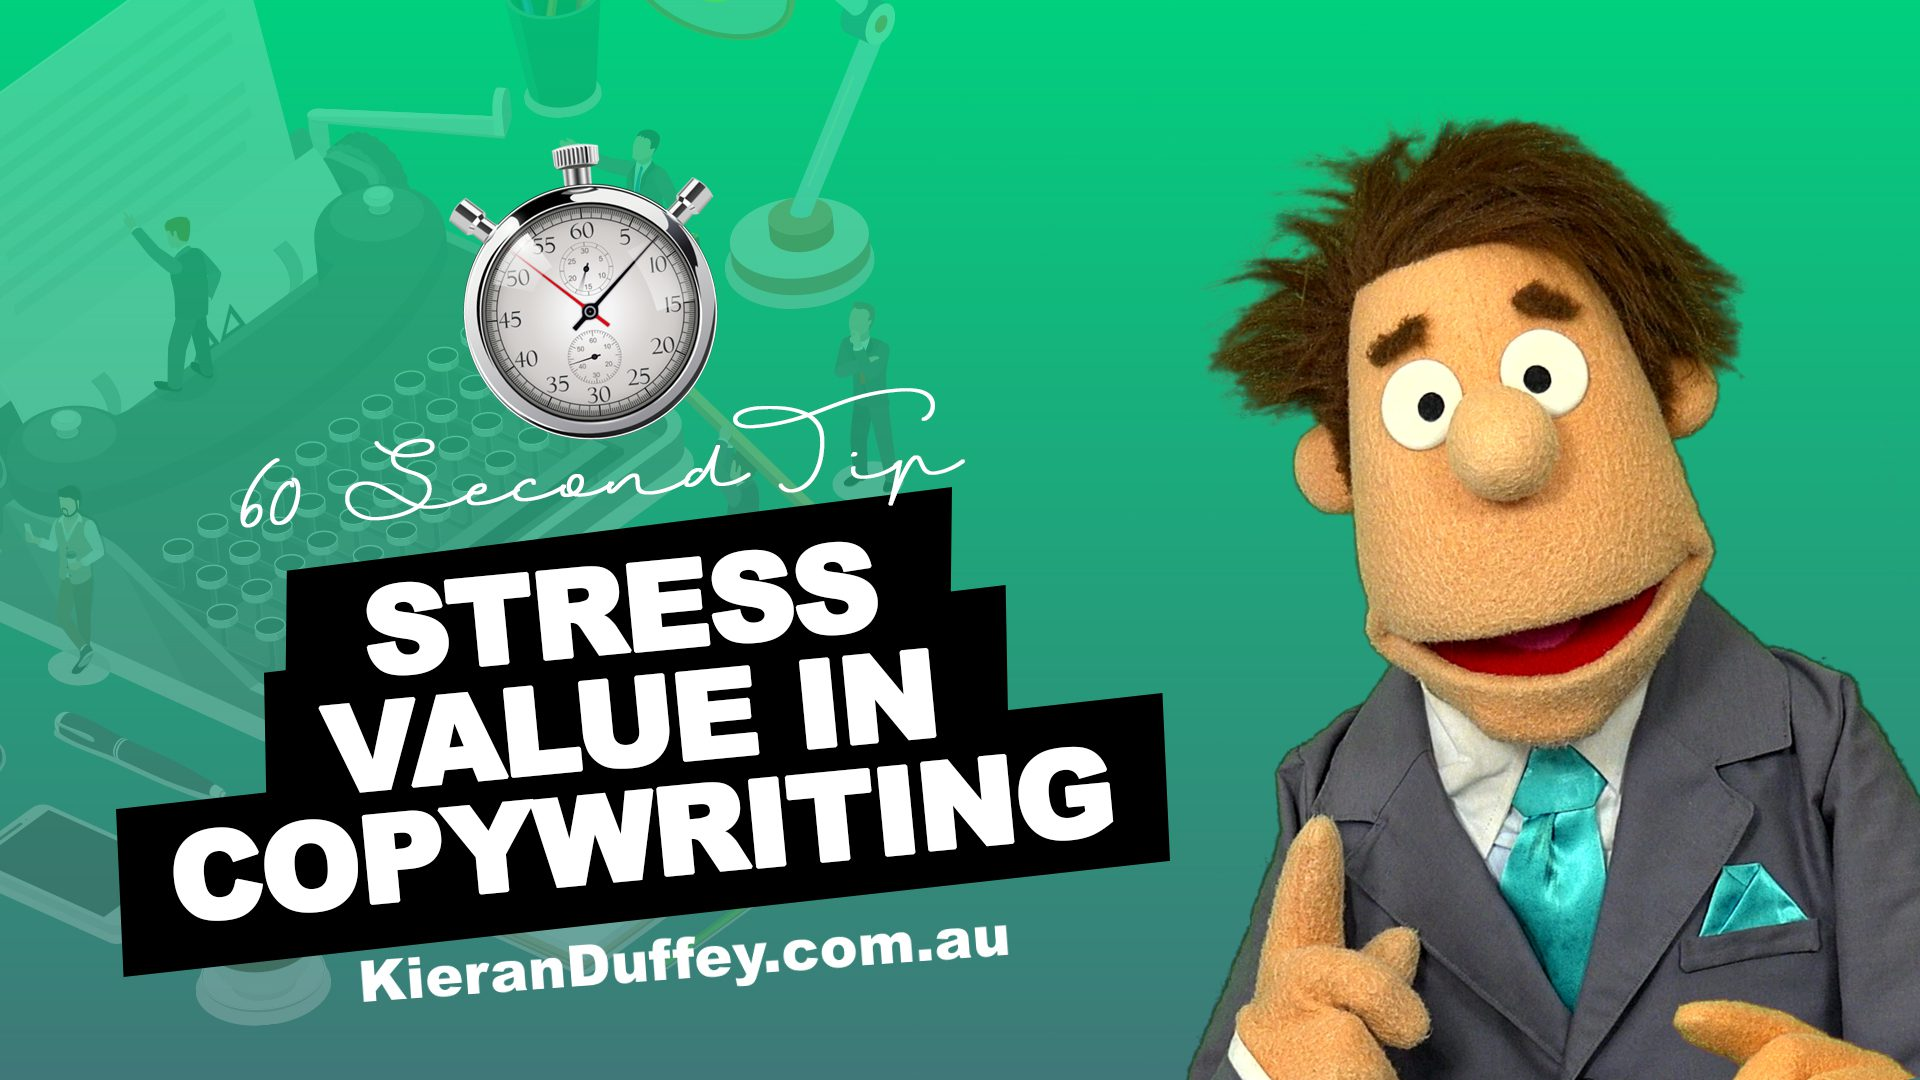 Video stressing importance of value in copywriting